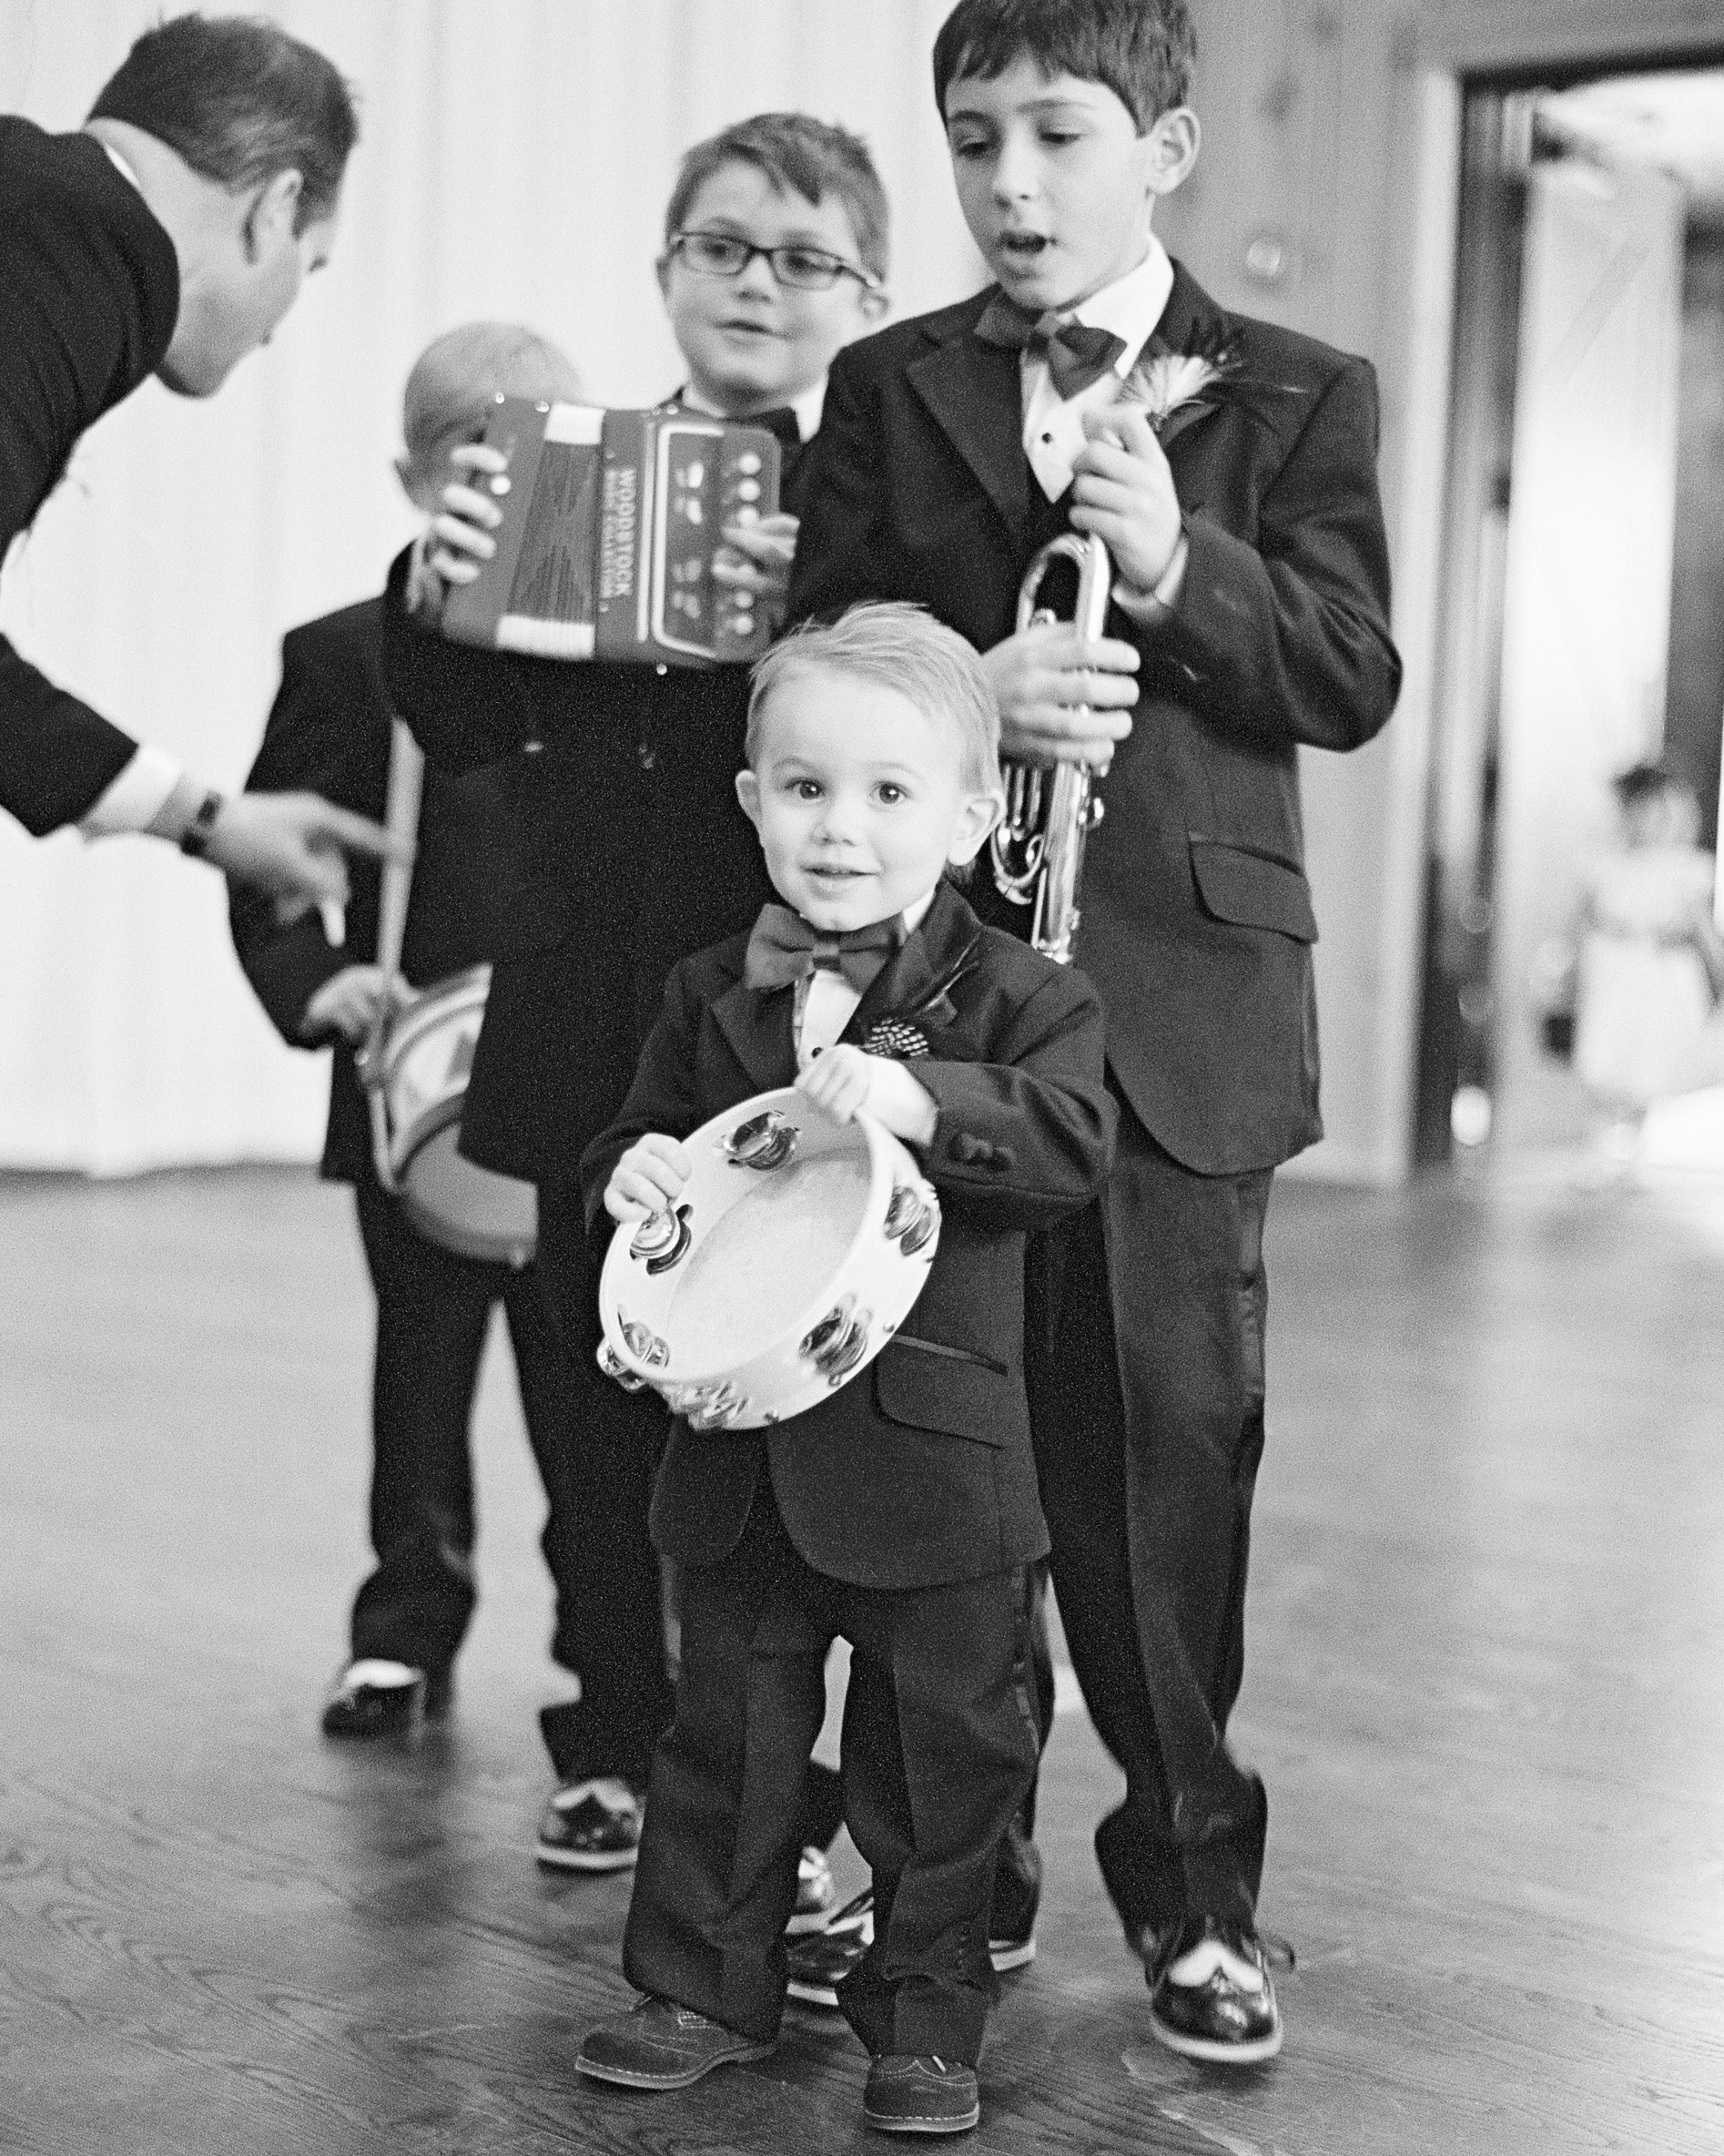 Eight Ways to Involve Young Children in Wedding Planning